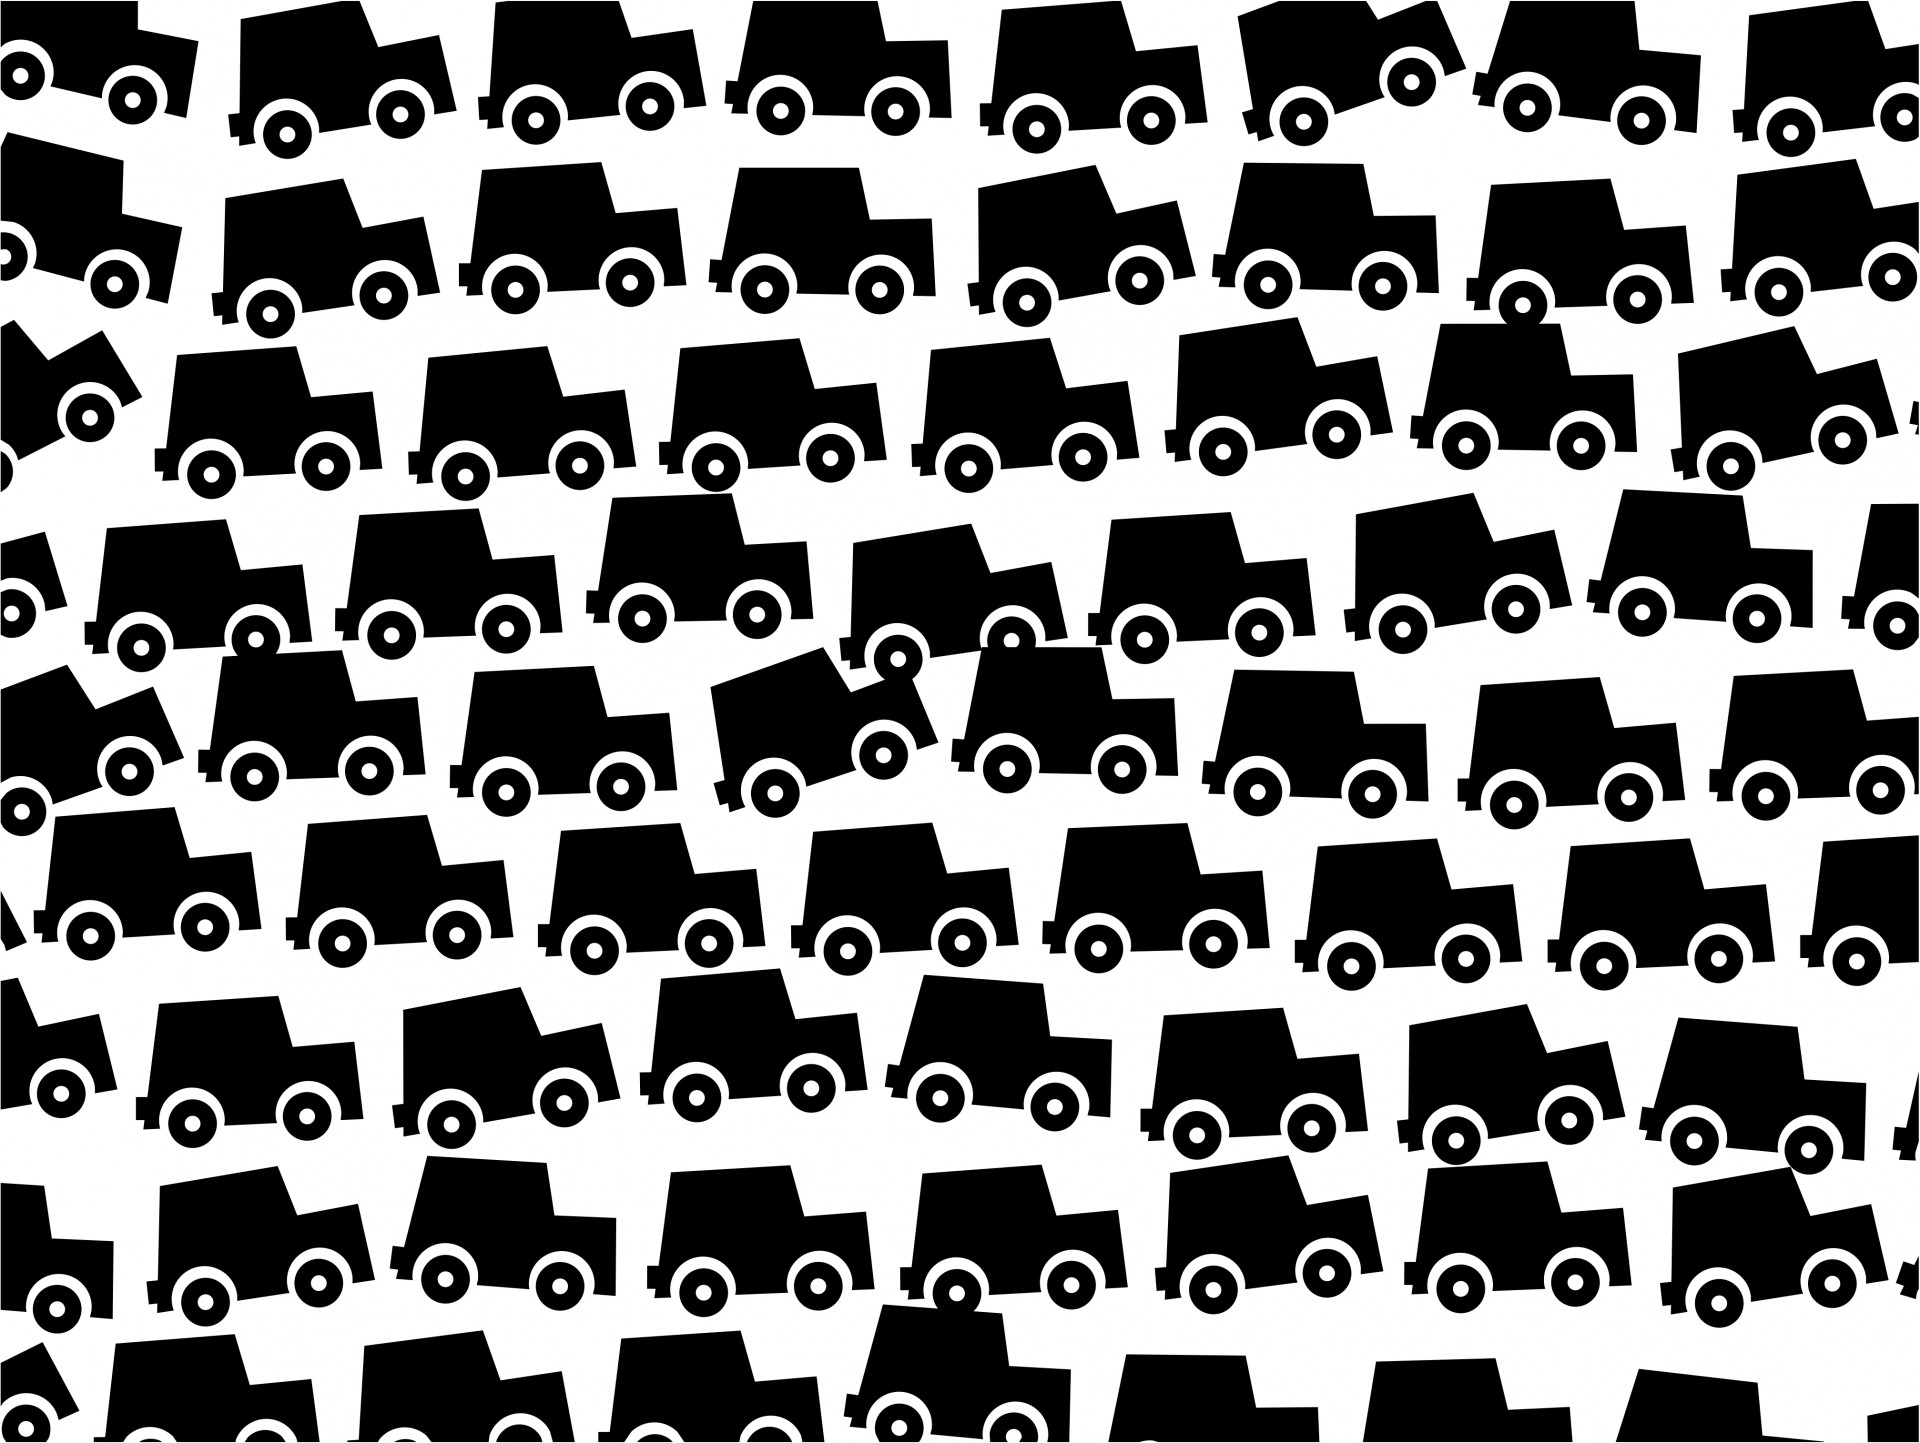 Stock photos car clipart clip art library library Black Cars Clipart Free Stock Photo - Public Domain Pictures clip art library library